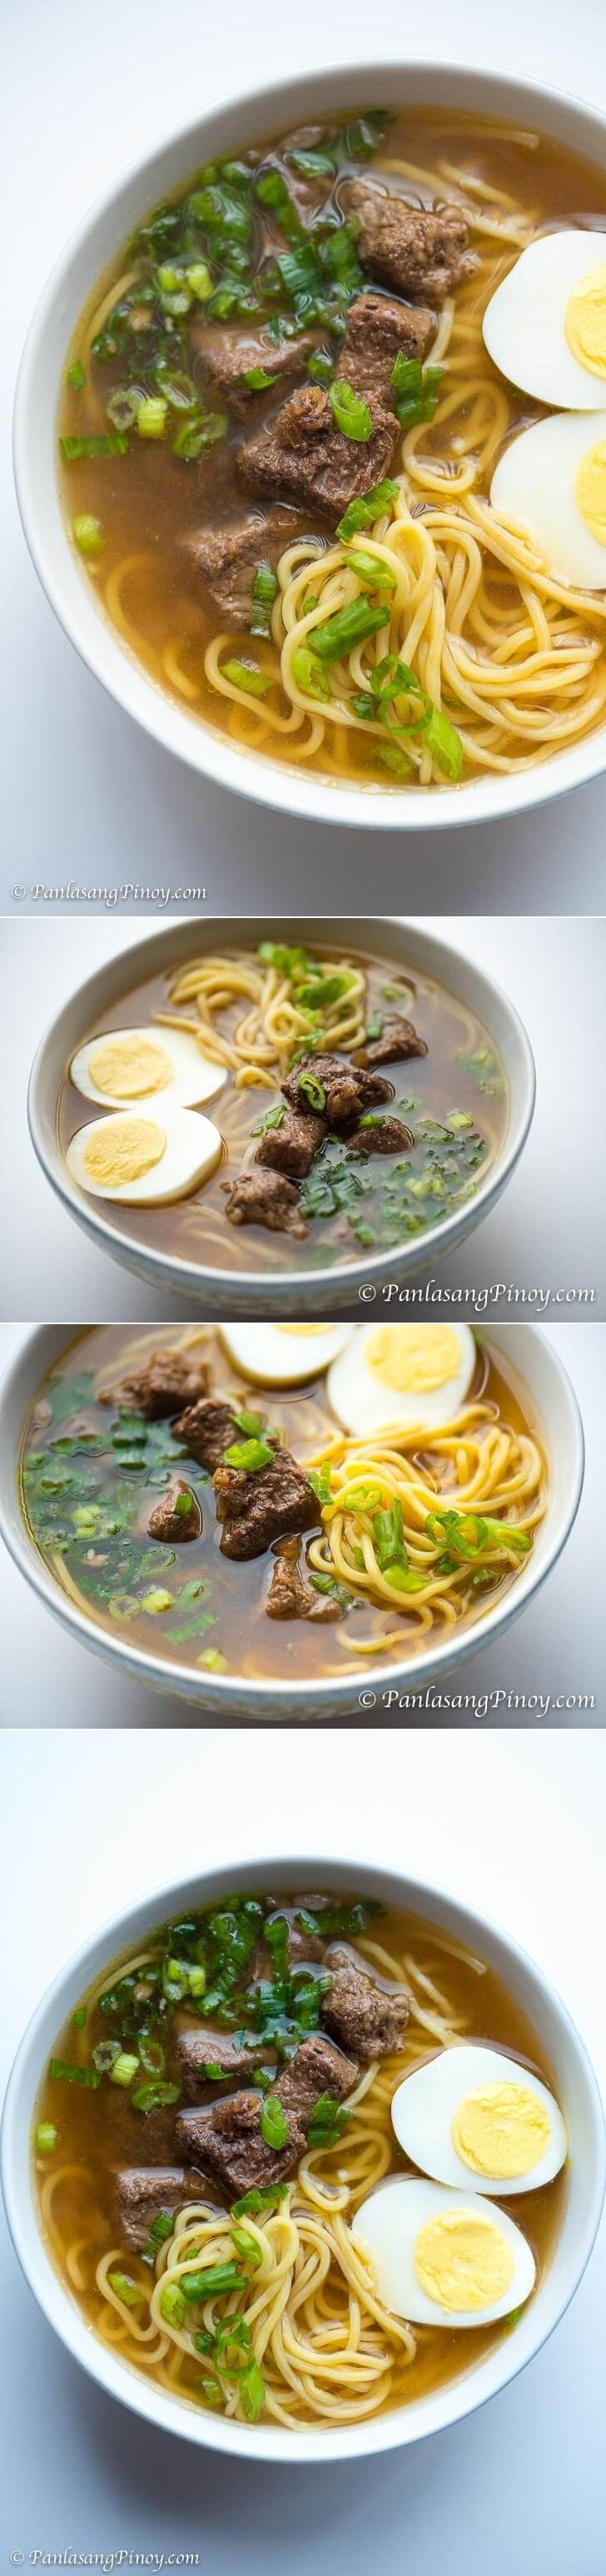 You are here: Home / Recipes / Beef Recipes / Beef Pares Mami Noodles Recipe Beef Pares Mami Noodles Recipe     Beef Pares Mami Noodles is a simple noodle soup dish. It is a combination of two dishes: beef pares and beef mami. I love to have it during cold weather. Since it is winter here in my location, I cannot help but enjoy this dish — and I plant to make this at least once a month. How exciting!